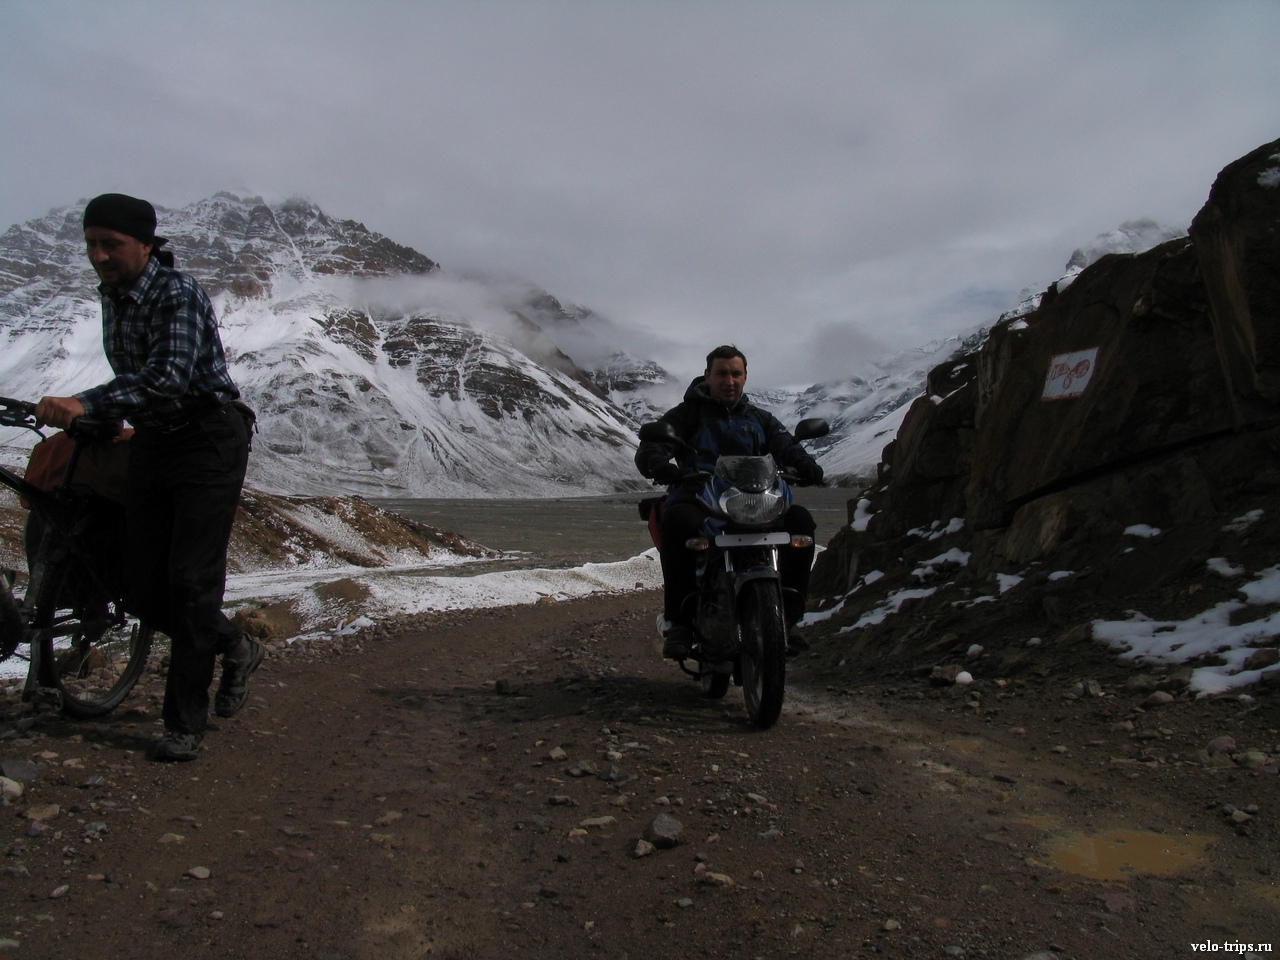 Andrey with motorcycle on the road from Losar to Kunzum La, India